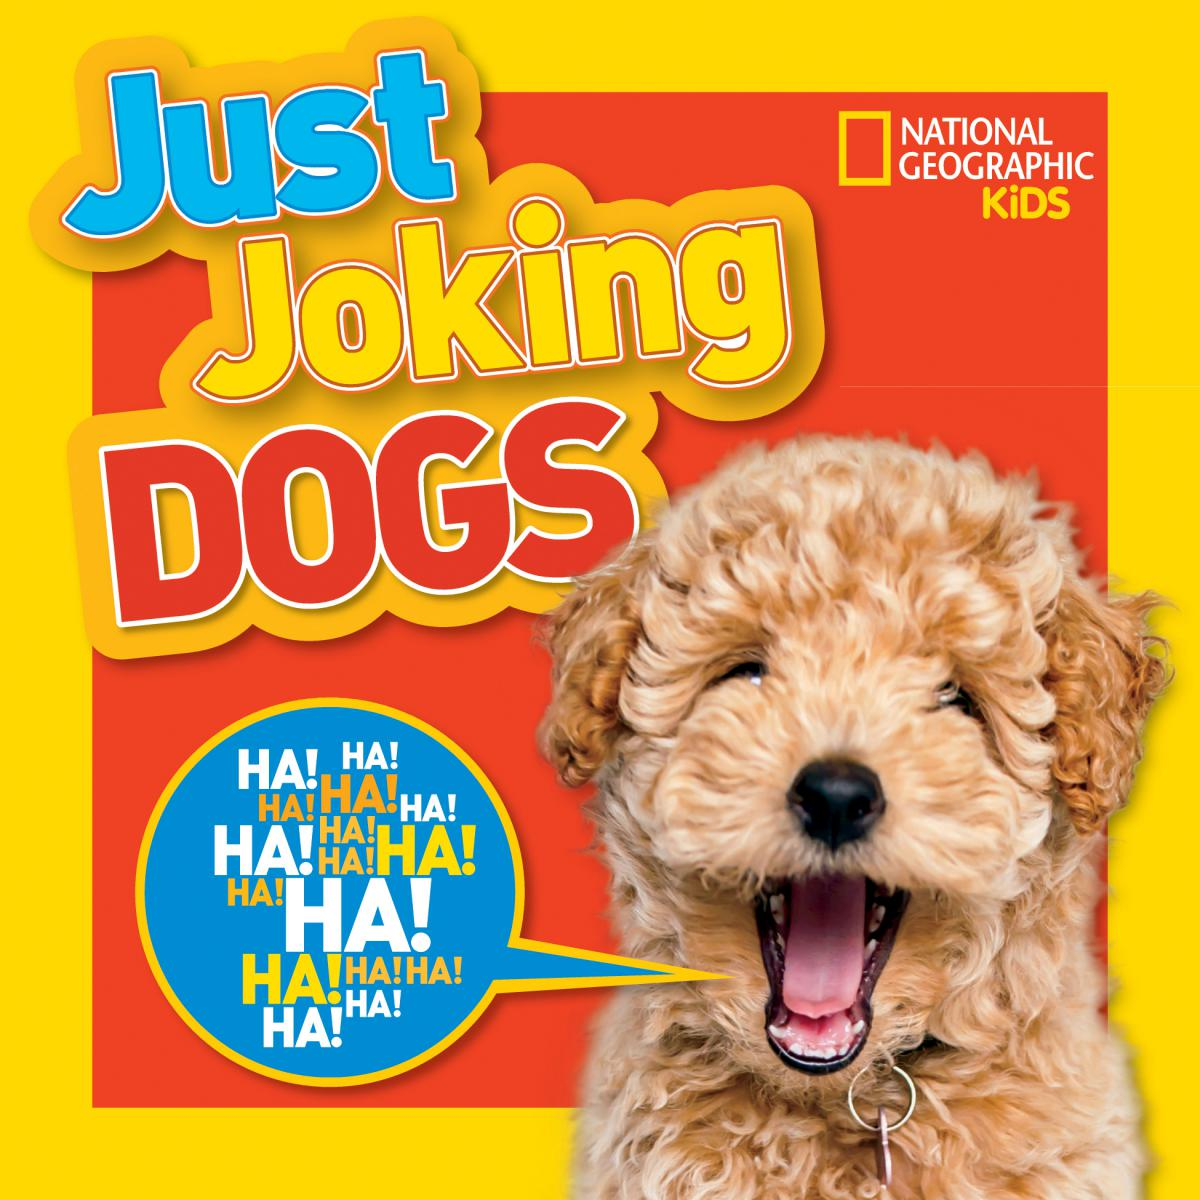 National Geographic Kids: Just Joking Dogs